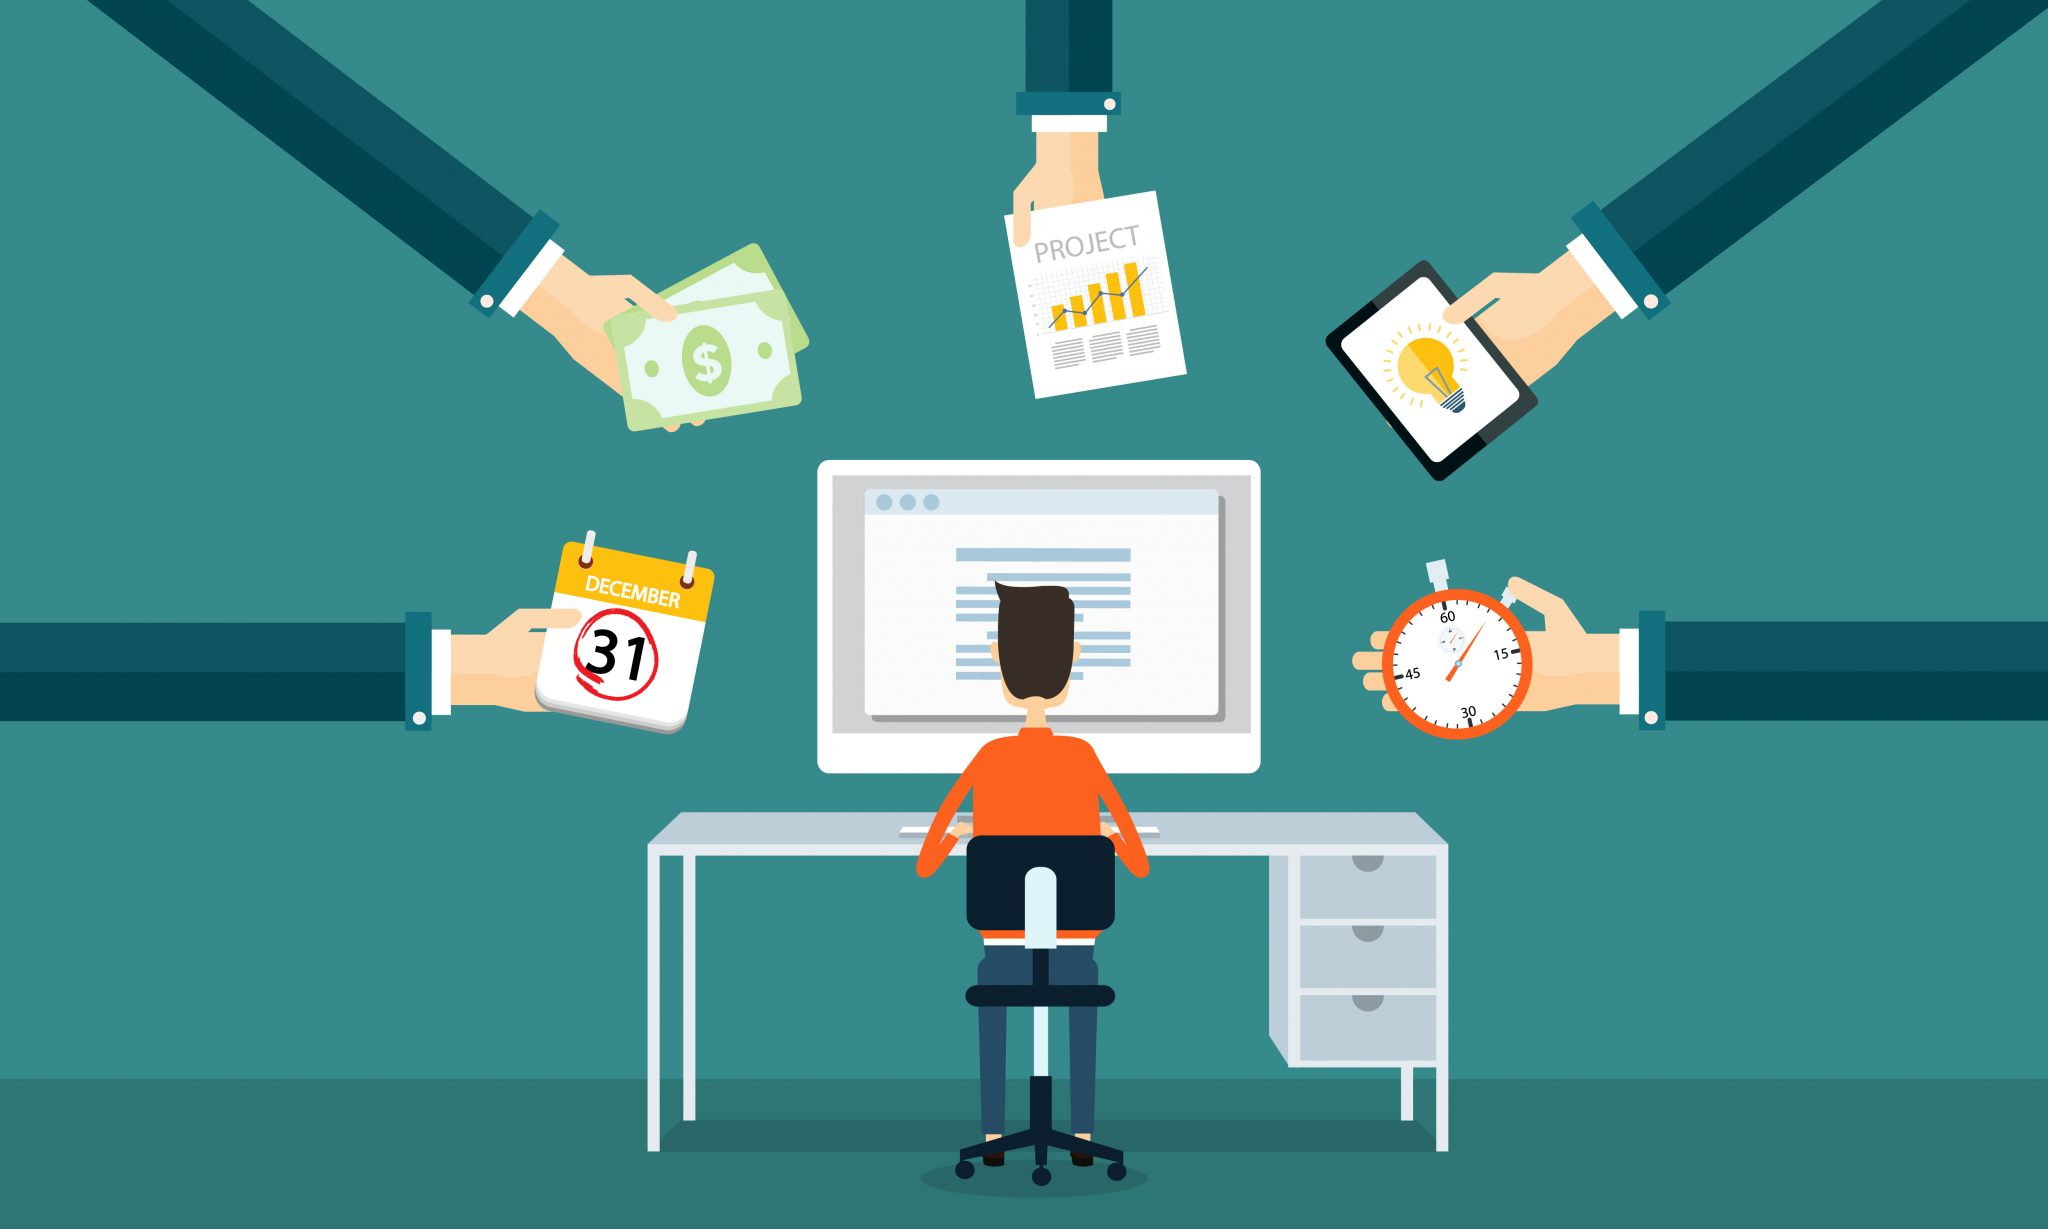 How Can You Make Money From Internet By Using Your Talent?